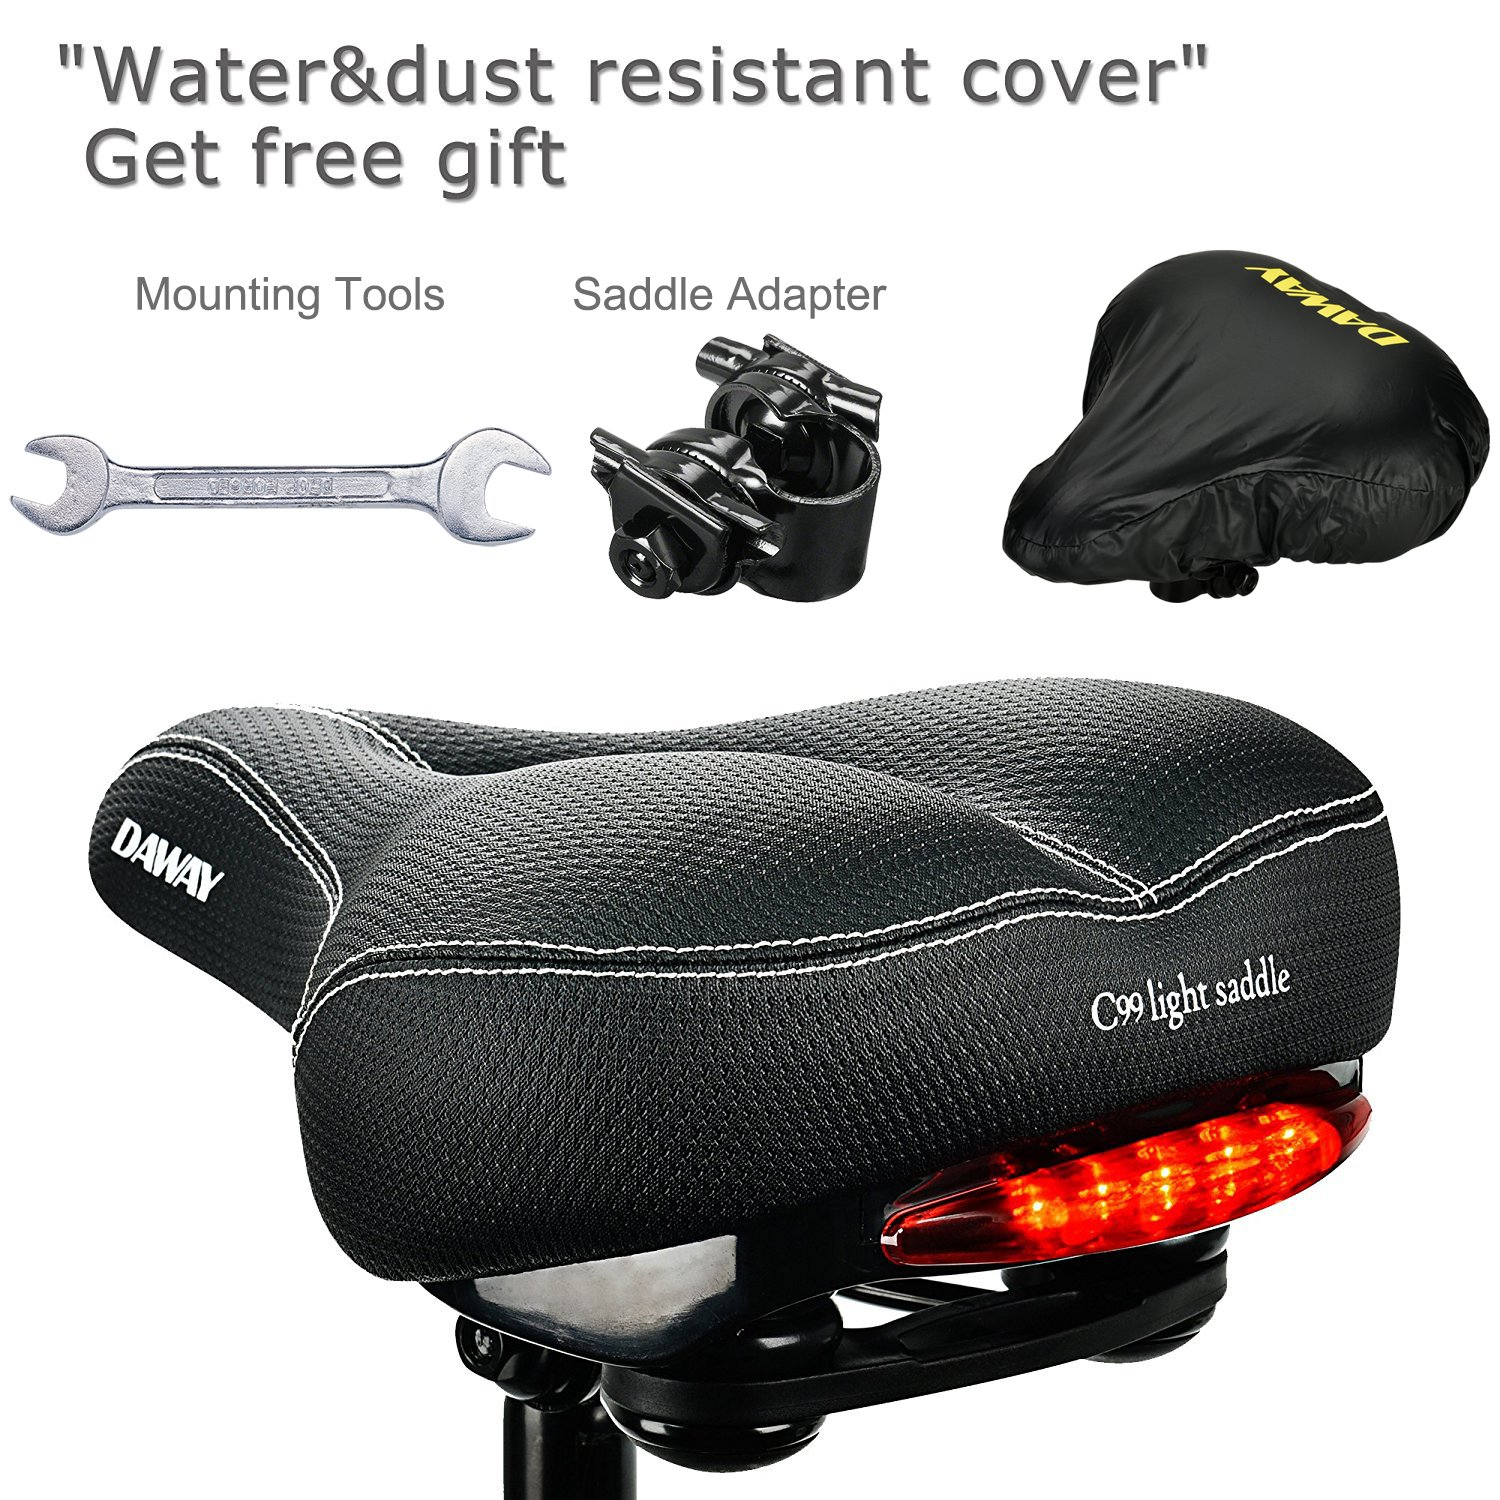 DAWAY Comfortable Men Women Bike Seat C99 Memory Foam Padded Leather Wide Bicycle Saddle Cushion with Taillight, Waterproof, Dual Spring Designed, Soft, Breathable, Fit Most Bikes, 1 Year Warranty by DAWAY (Image #6)